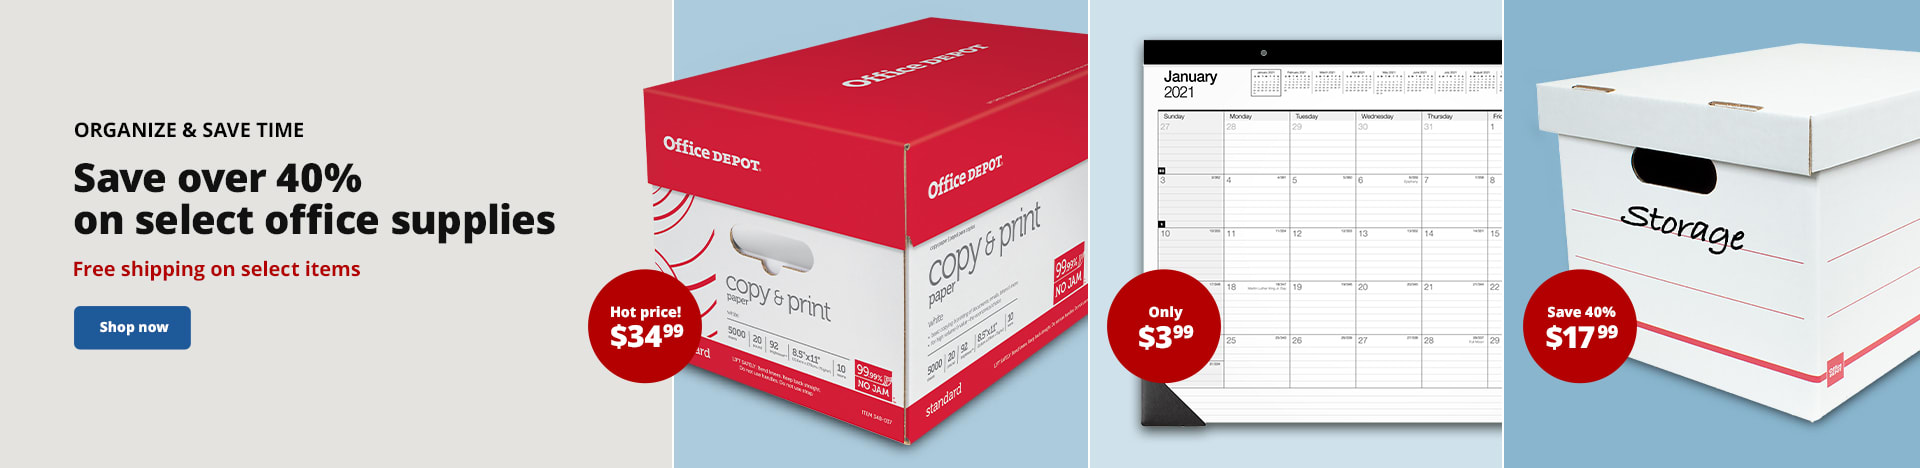 Organize & Save Time. Save over 40% on select office supplies. Free shipping on select items